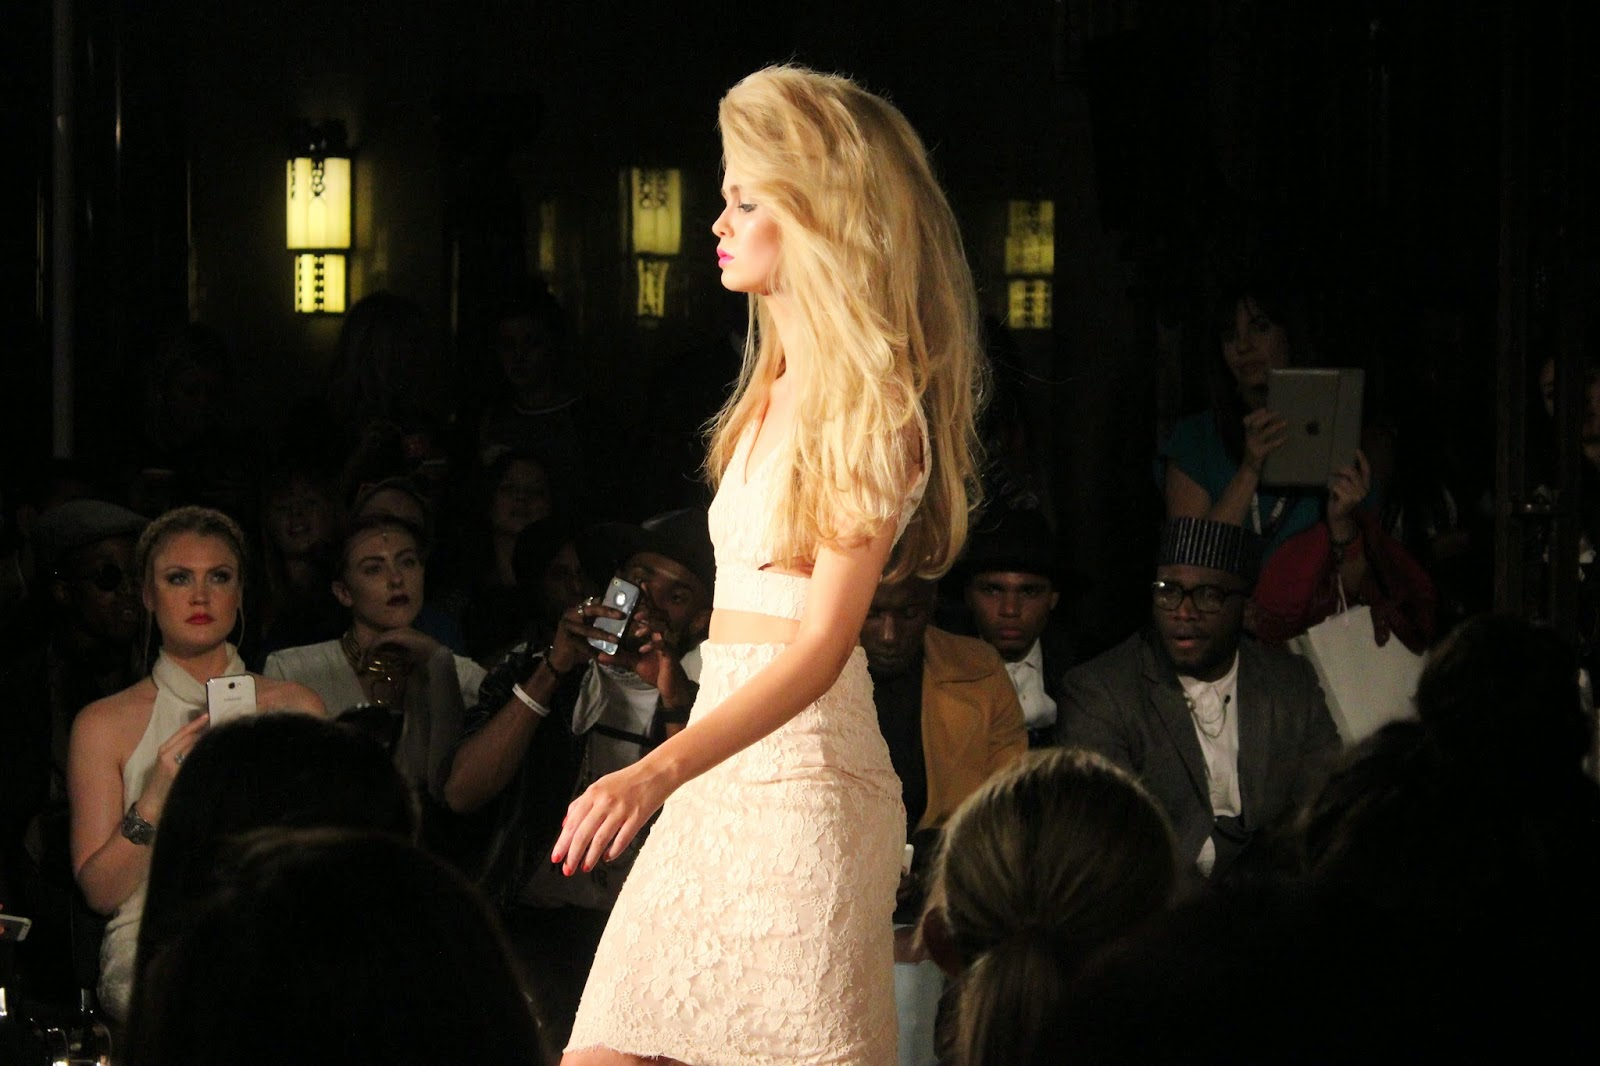 london-fashion-week-2014-lfw-spring-summer-2015-blogger-fashion-Hema-Kaul-catwalk-models-freemasons hall-fashion-scout-twosie-top-skirt